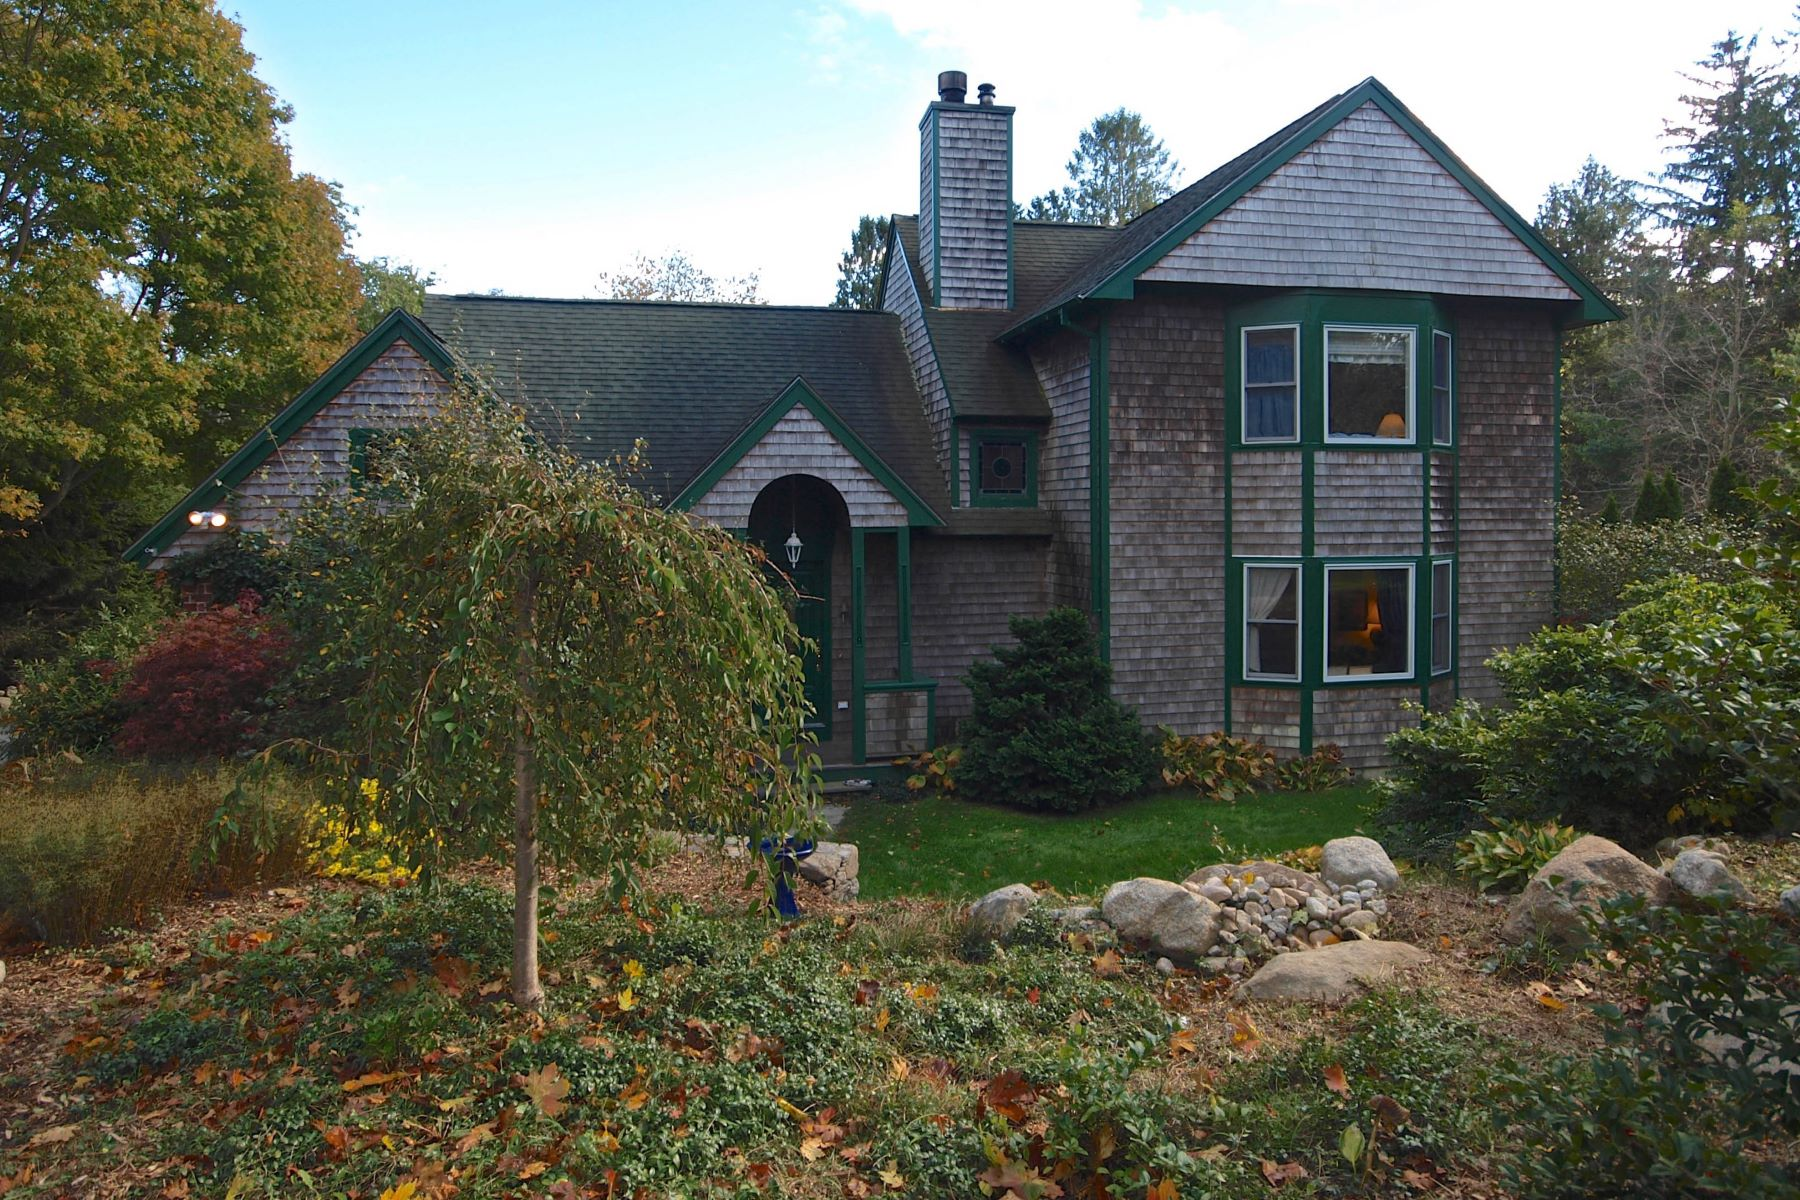 Single Family Home for Sale at Post Road 740 Post Road South Kingstown, Rhode Island 02879 United States